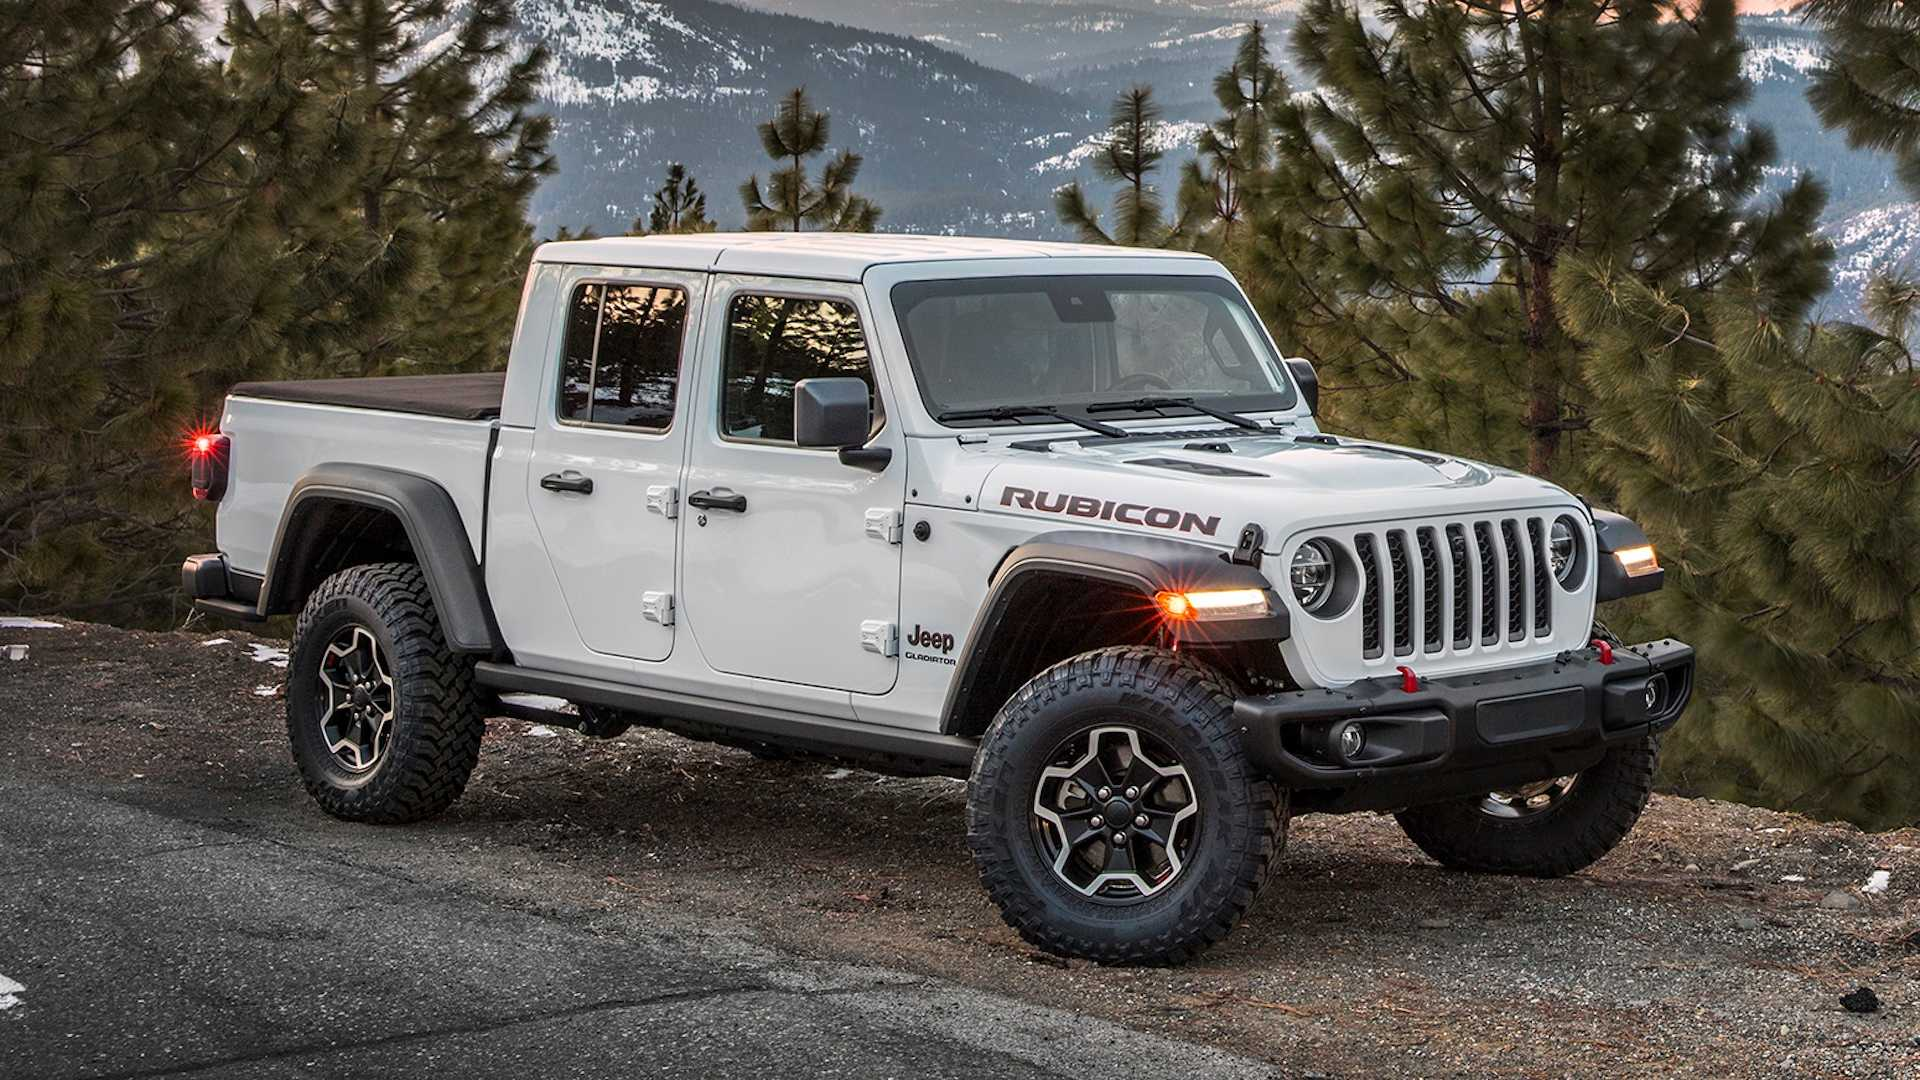 49 All New How Much Is The 2020 Jeep Gladiator Spy Shoot by How Much Is The 2020 Jeep Gladiator